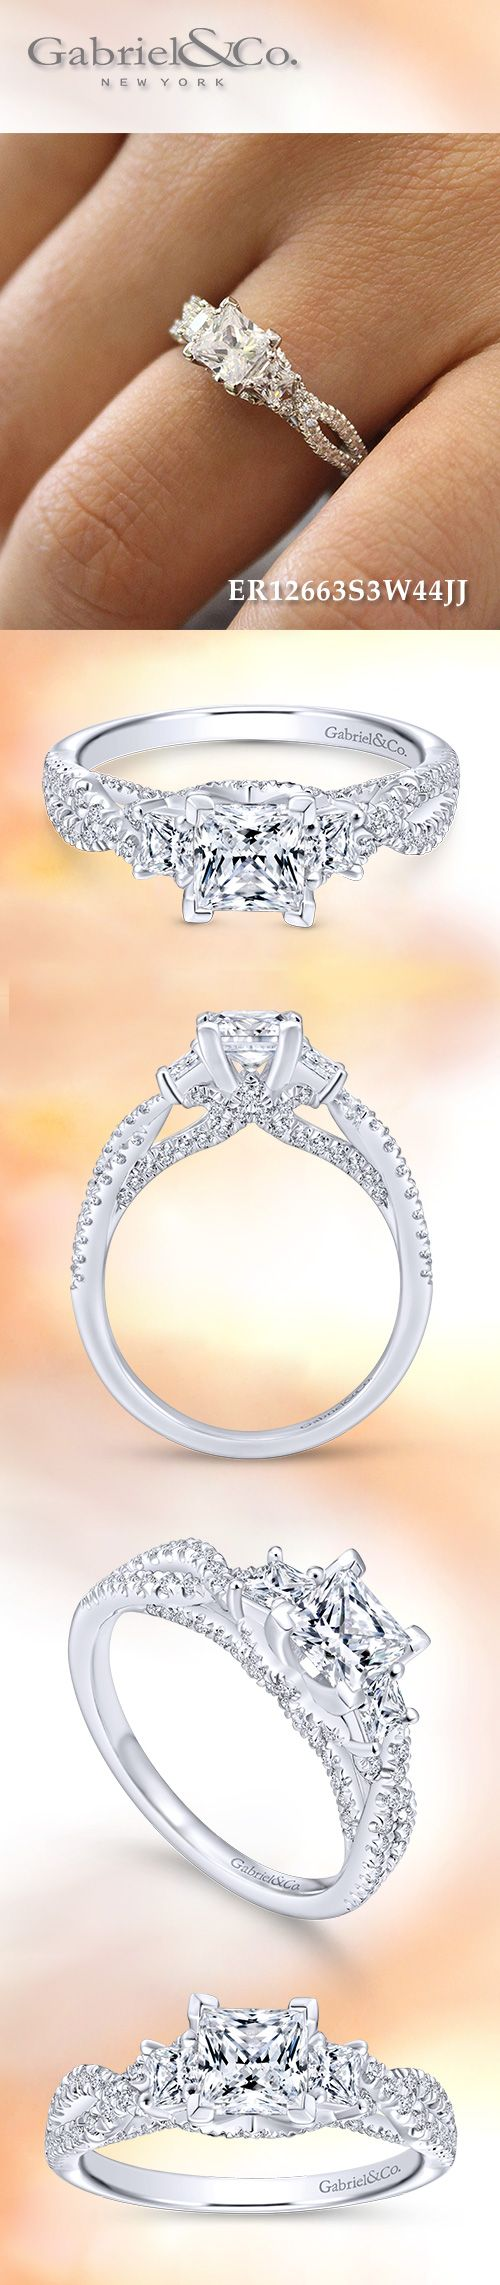 Gabriel & Co. - Voted #1 Most Preferred Bridal Brand. Discover your future Three Stone Princess Cut Engagement Ring right here.